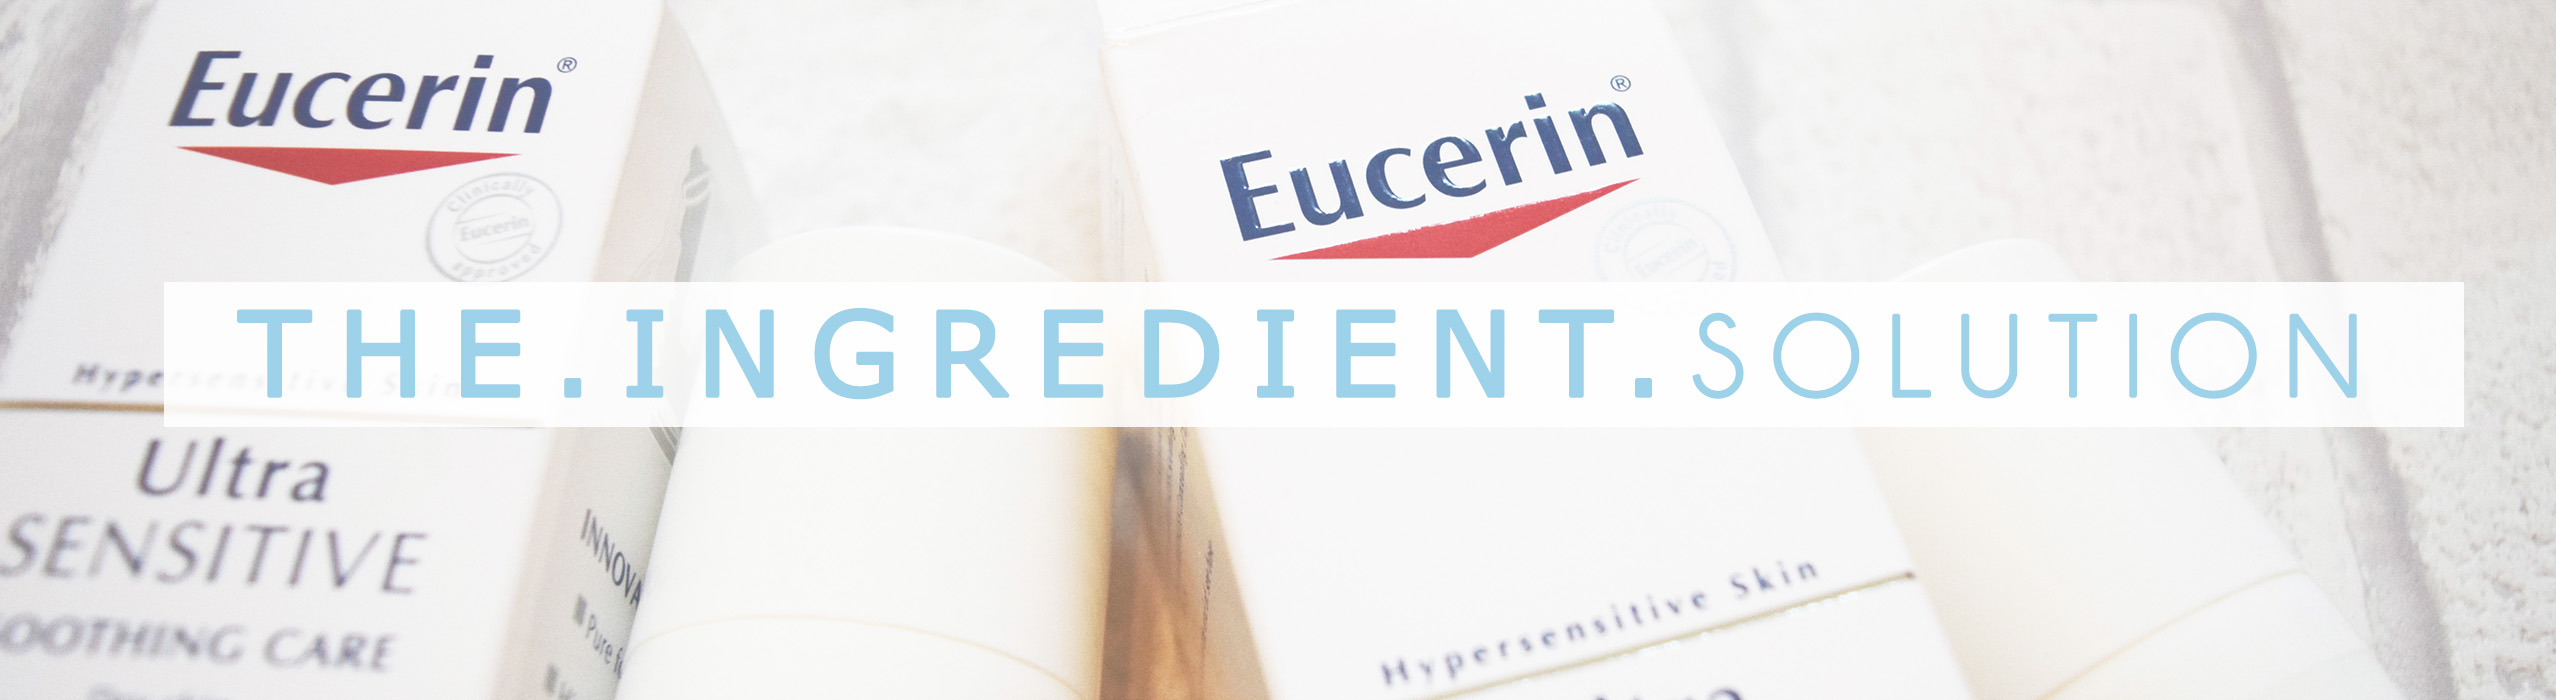 Hypersensitive skincare solution! Eucerin with SymSitive - crazy awesome at stopping sensitive skin from over reacting!